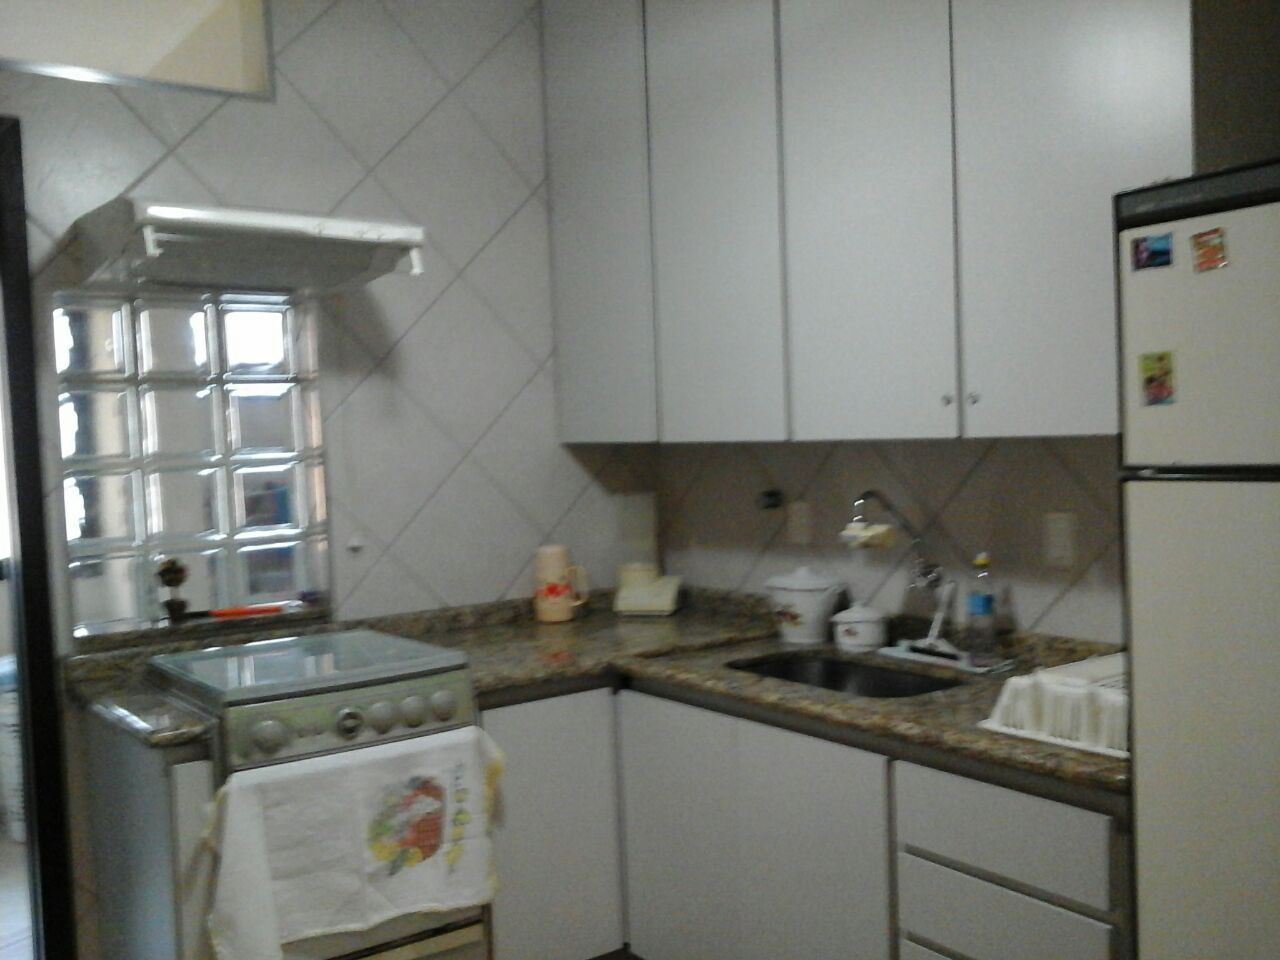 346 - Apto Guarujá-SP 131 m²